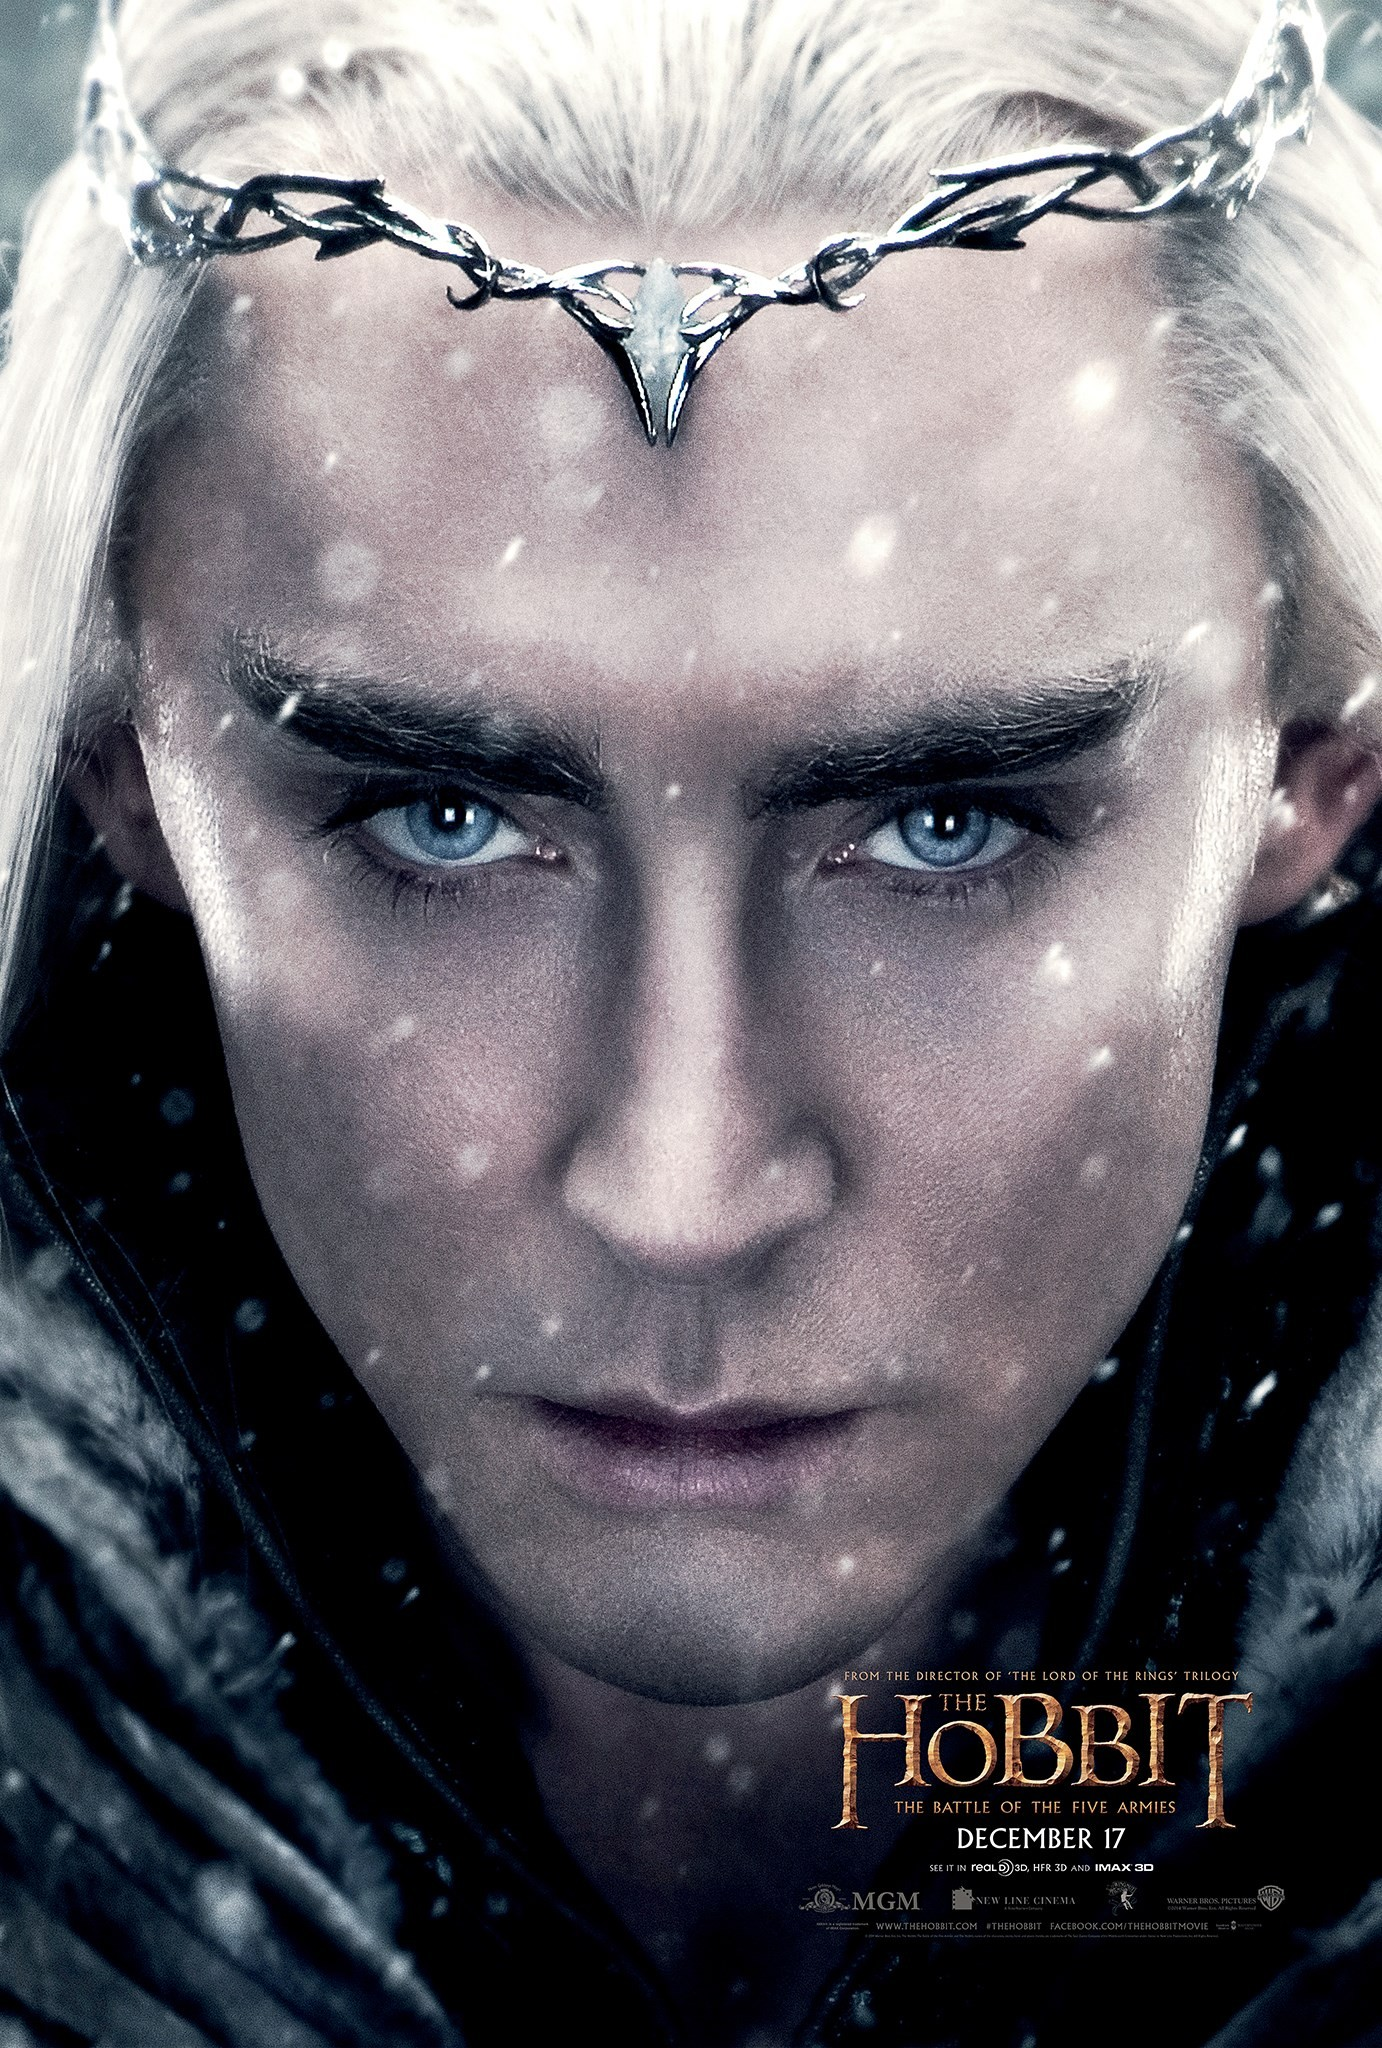 The Hobbit The Battle of the Five Armies-Official Poster CHAR-14OUTUBRO2014-01